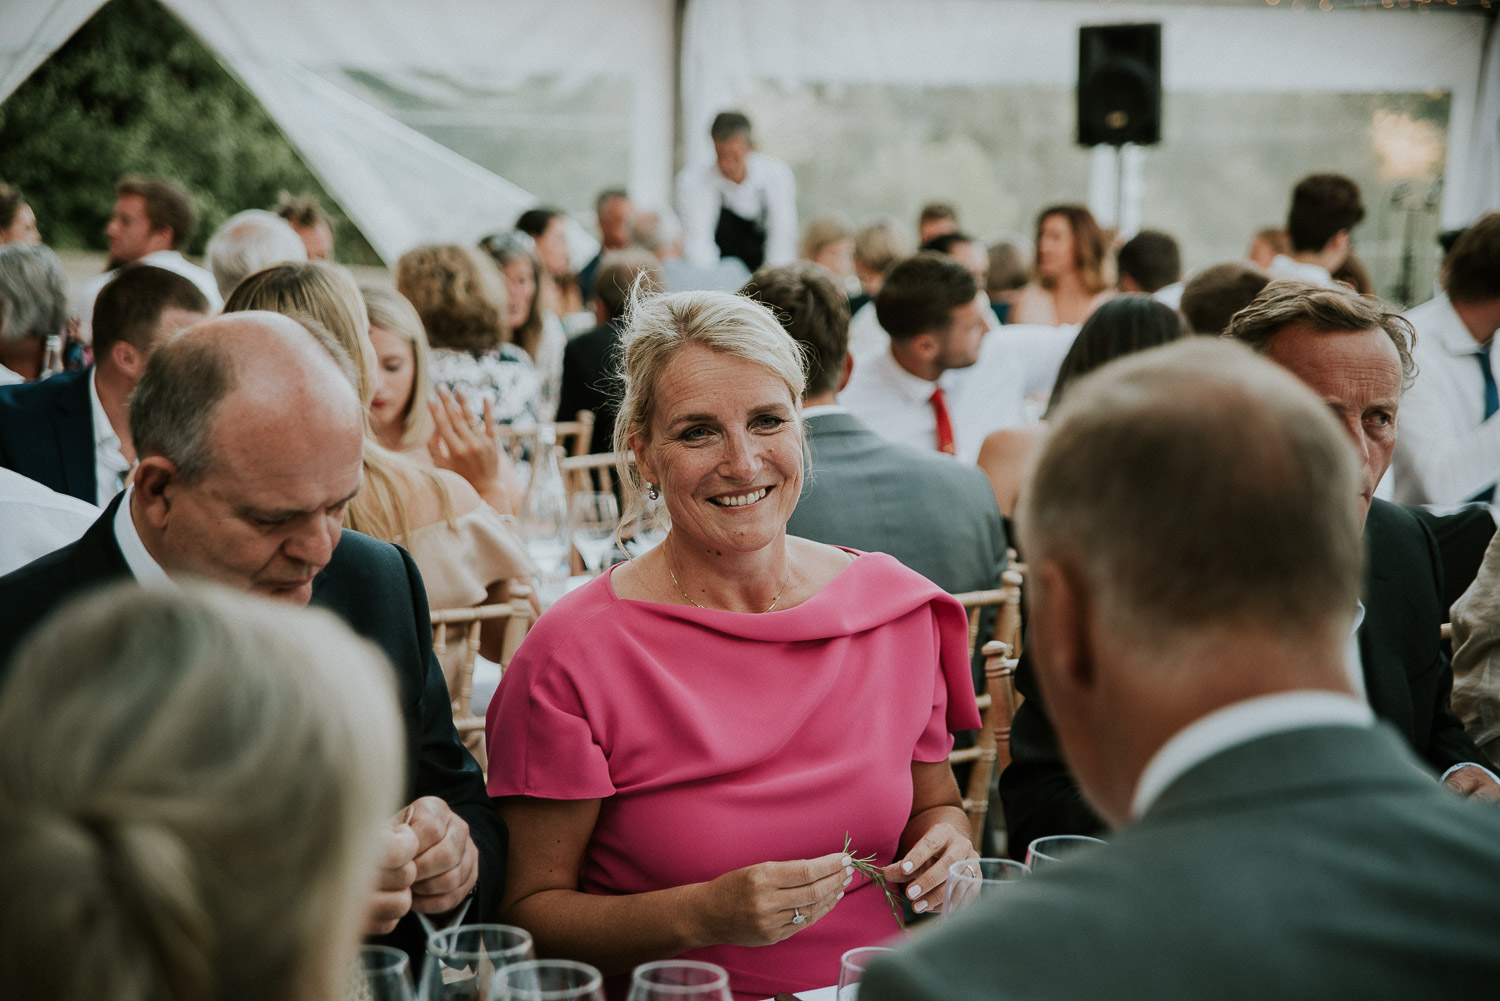 bergerac_wedding_katy_webb_photography_france_UK153